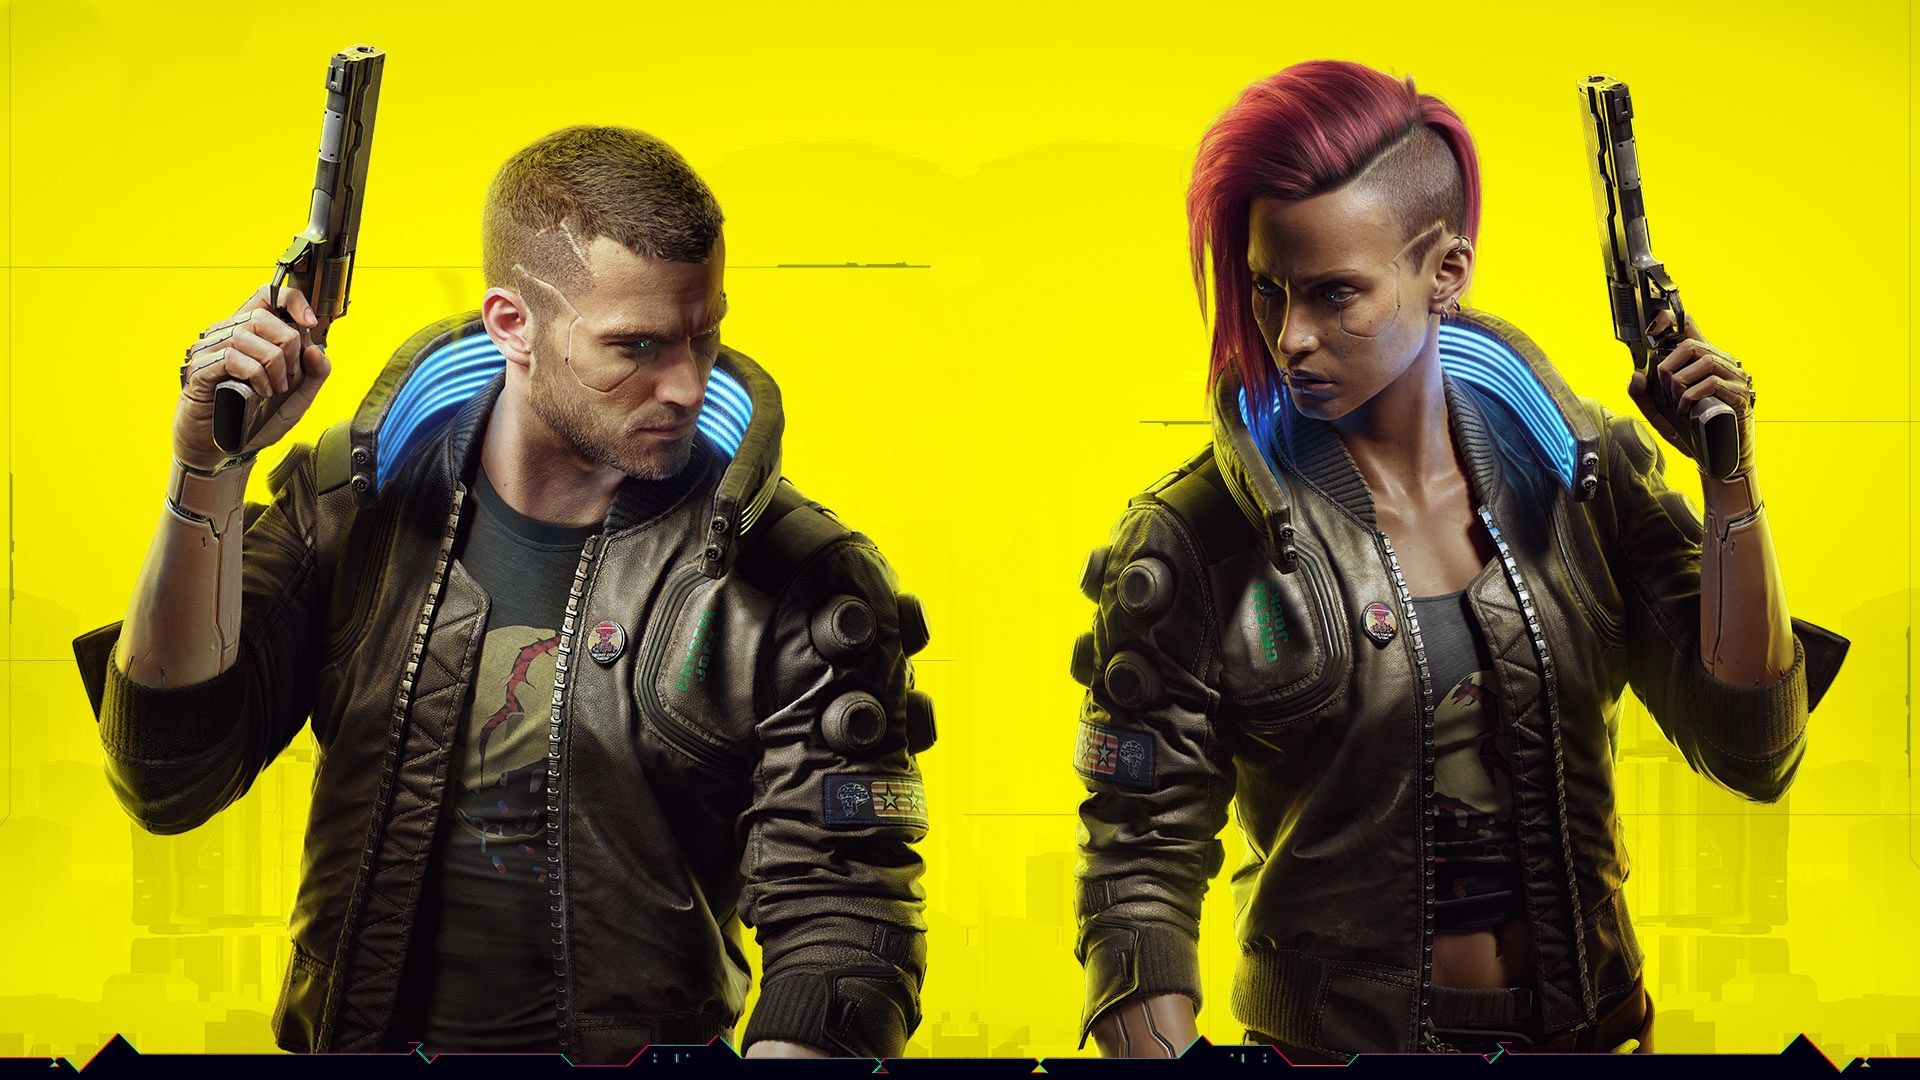 Cyberpunk 2077 Controversy So Far: Trans Commodification And Attack On The Epileptic